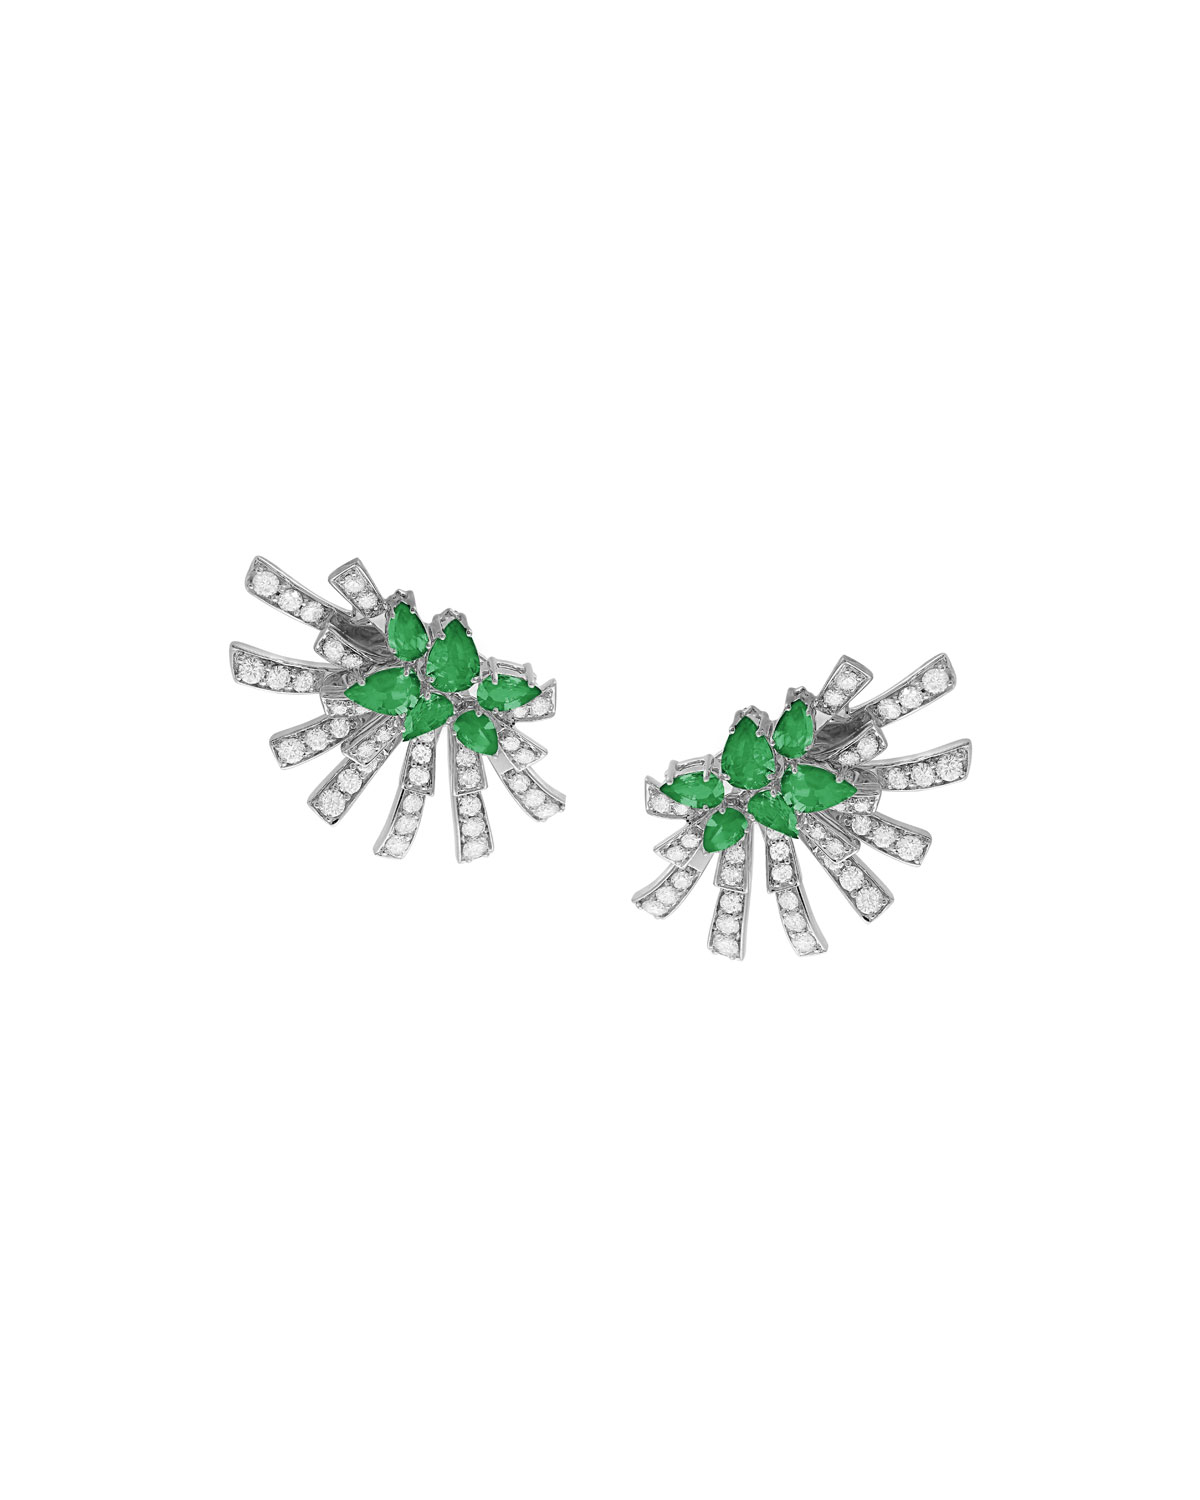 Mirage 18k White Gold Emerald and Diamond Cluster Earrings